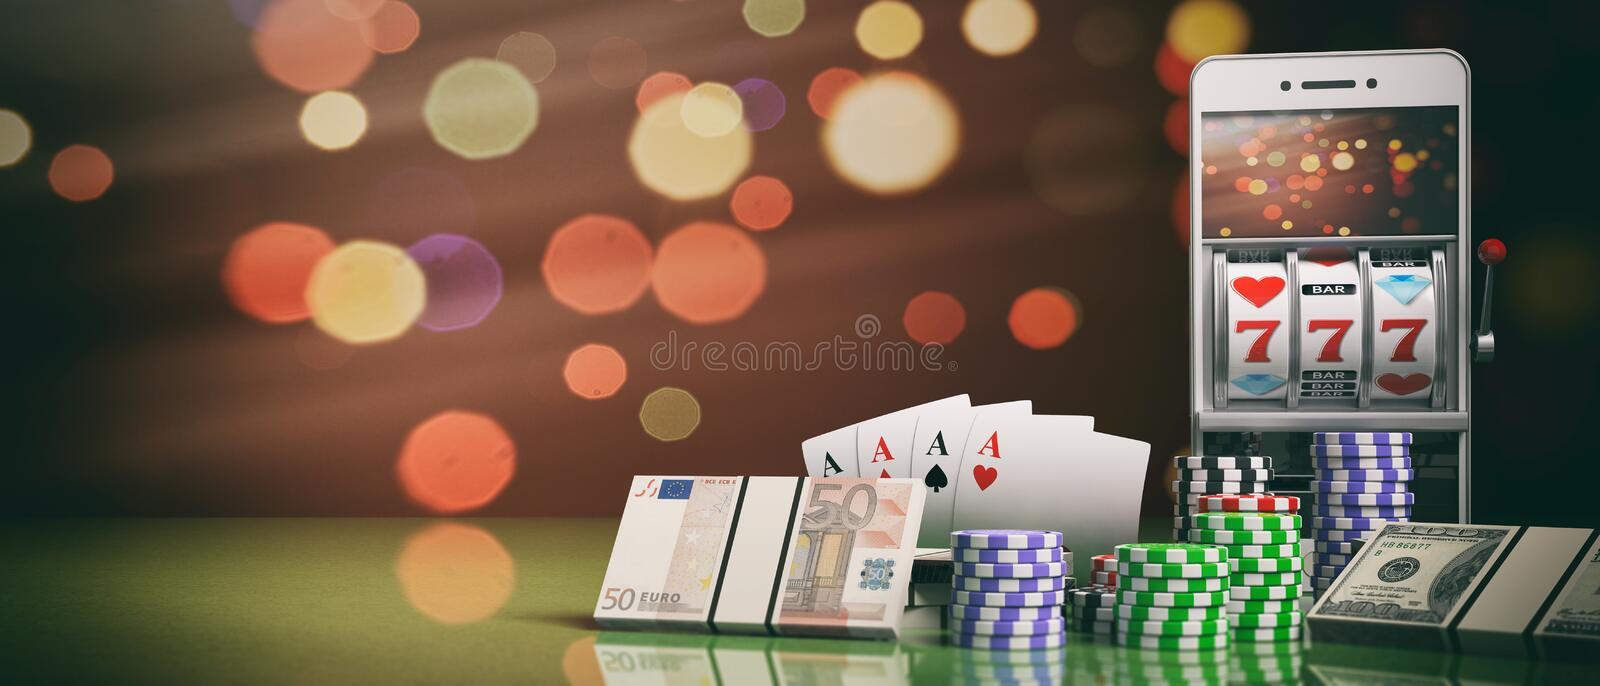 Slot machine on a smartphone screen, poker chips, cards and money. 3d illustration. Online gambling concept. Slot machine on a smartphone screen, poker chips stock illustration